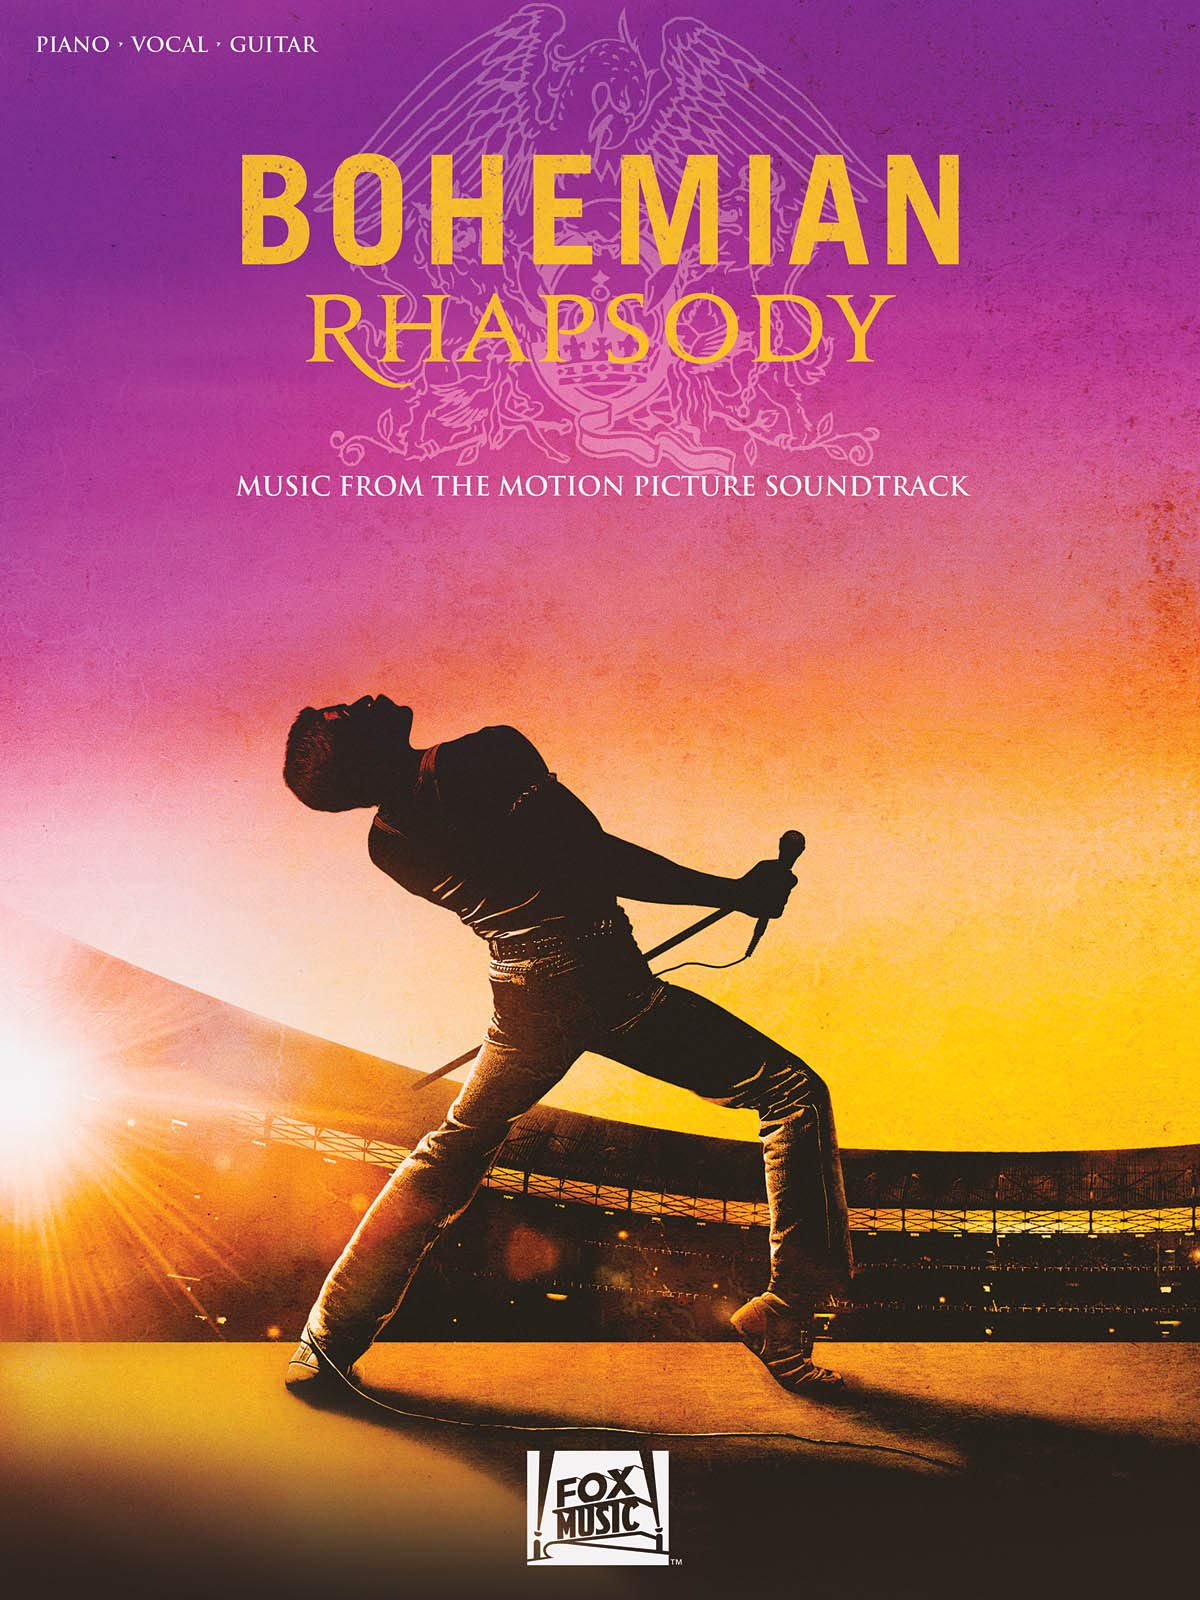 Hal Leonard Publishing Corporation: Bohemian Rhapsody: Amazon.es ...